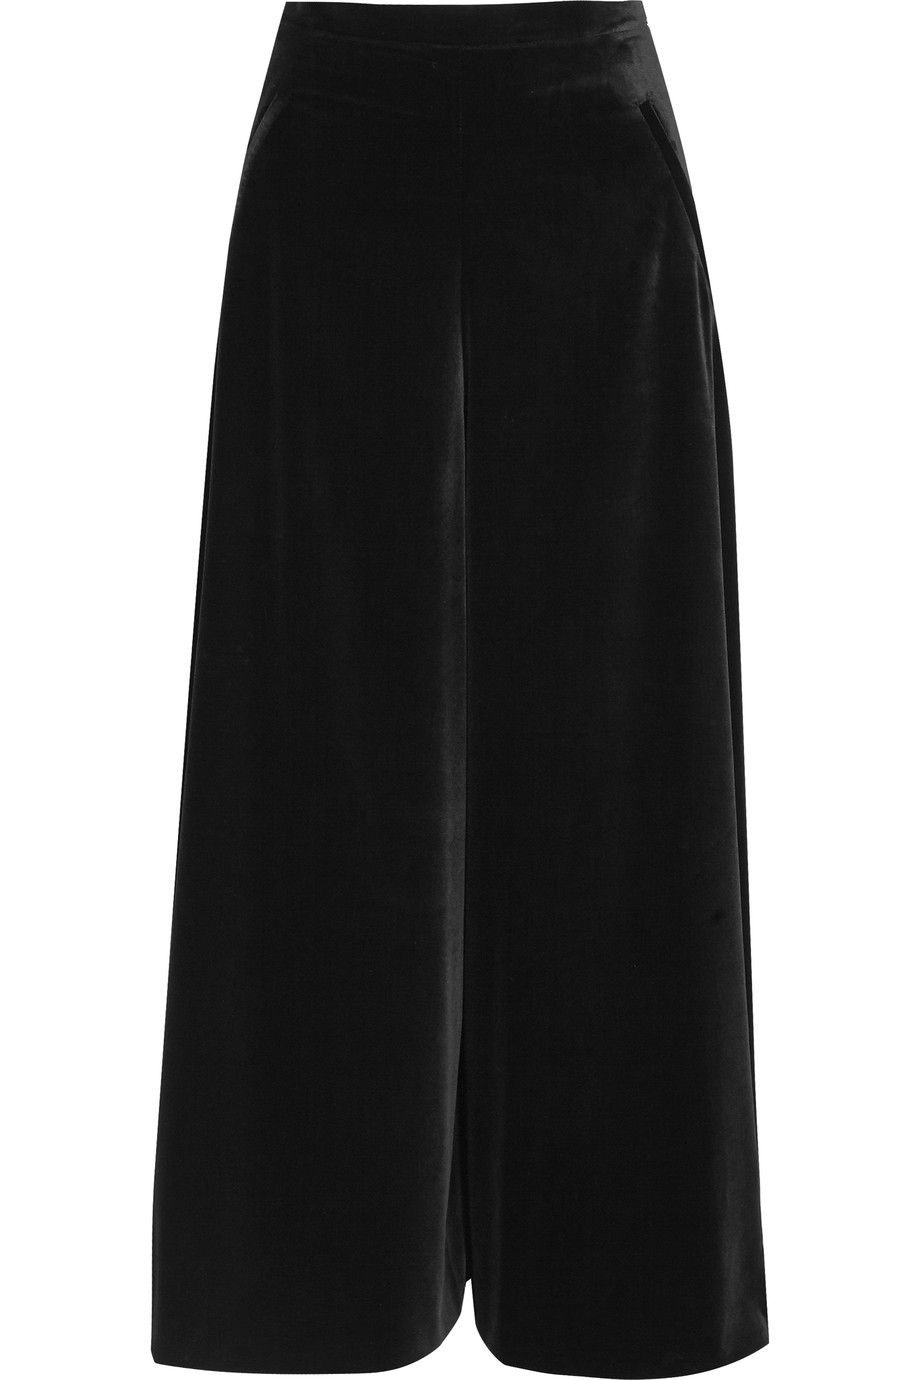 wide leg trousers - Black Temperley London PVvSy